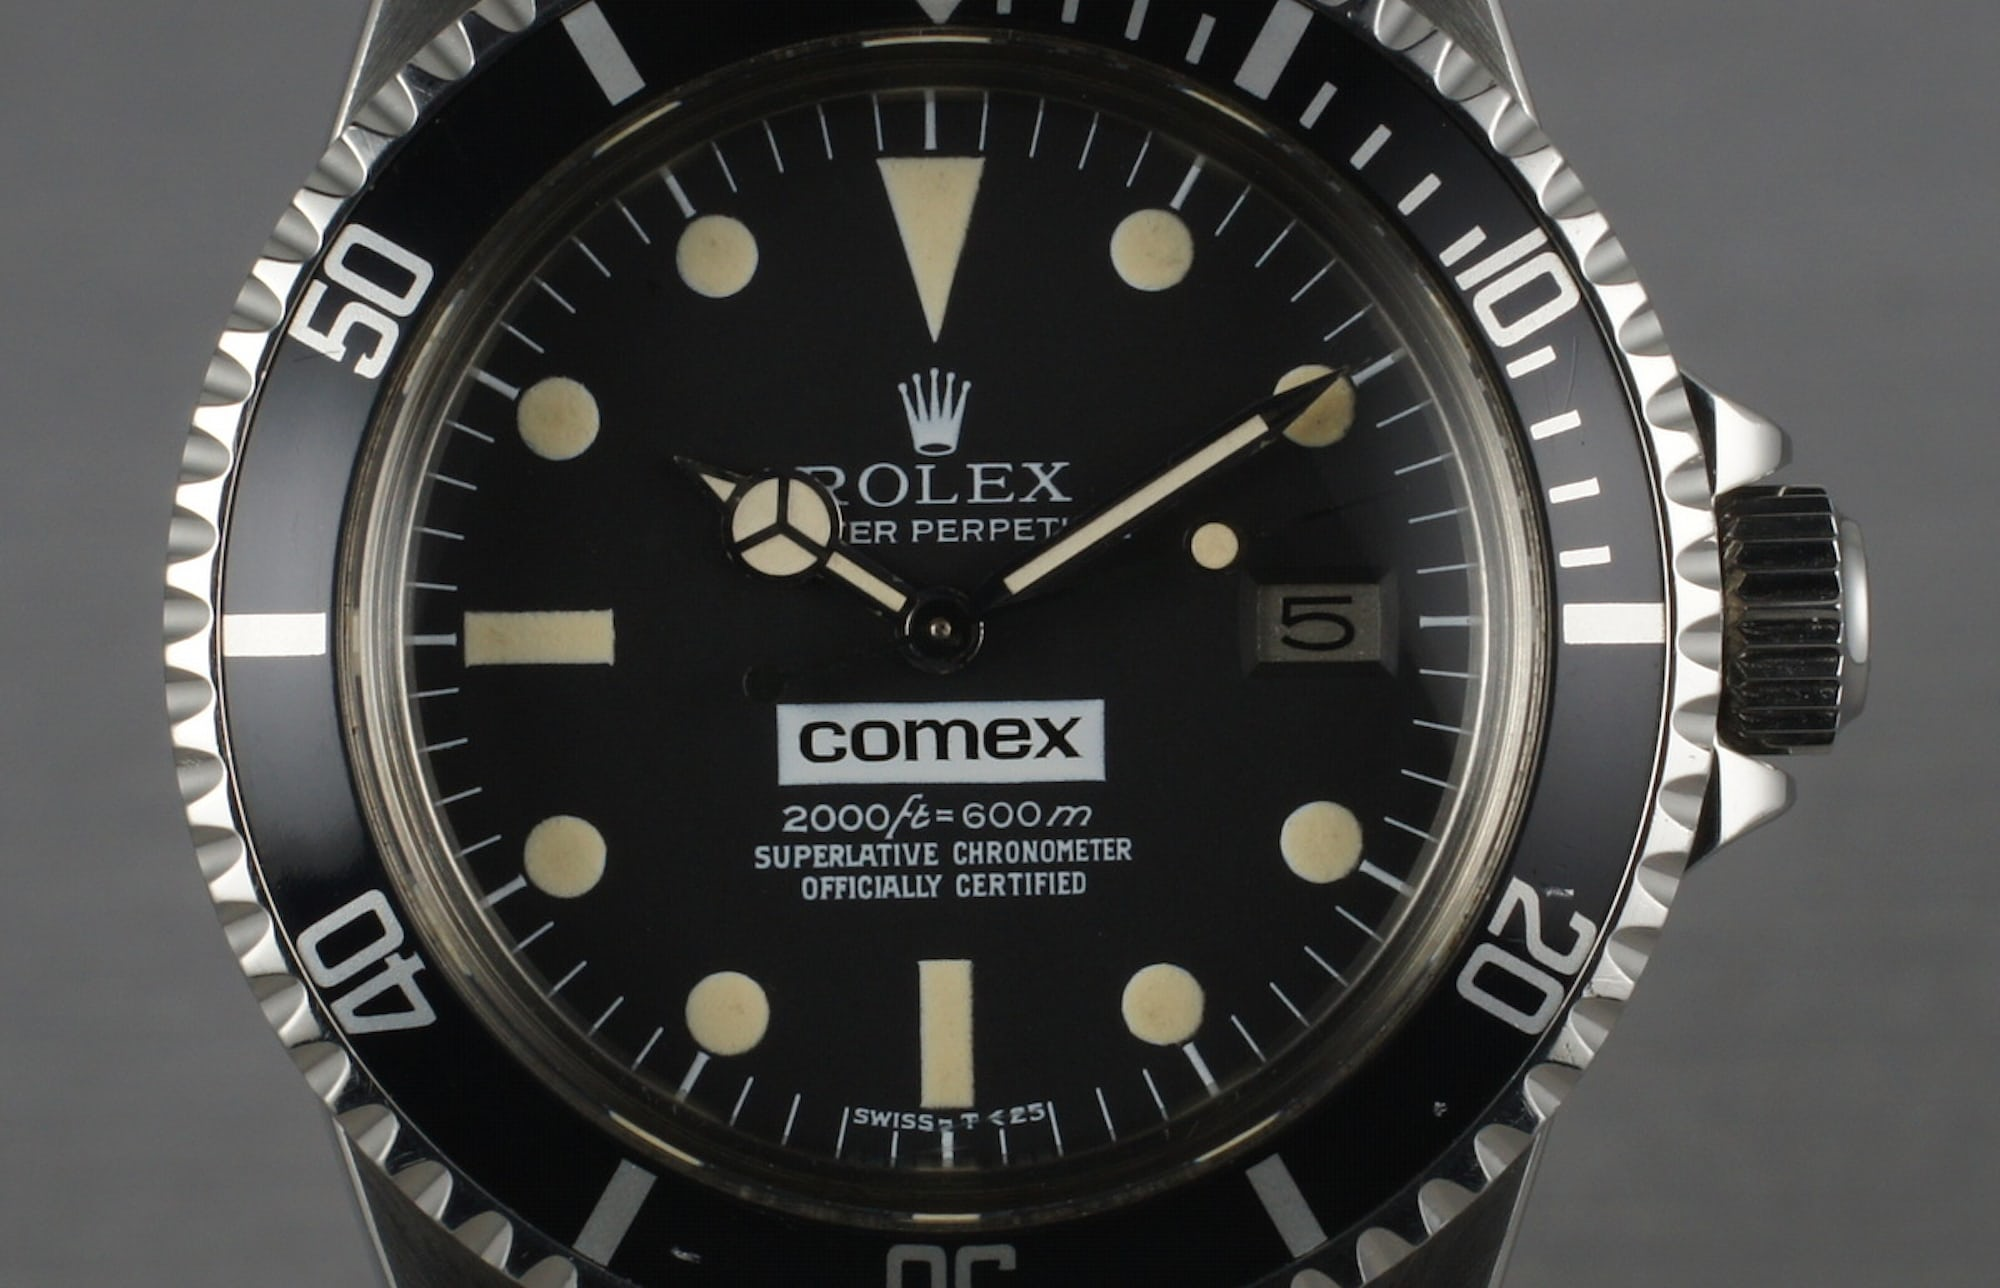 Rolex COMEX Sea-Dweller; depth rating 600 meters Technical Perspective: What Dive Watch Depth Ratings Really Mean (And Whether You Can Trust Them) Technical Perspective: What Dive Watch Depth Ratings Really Mean (And Whether You Can Trust Them) seadweller